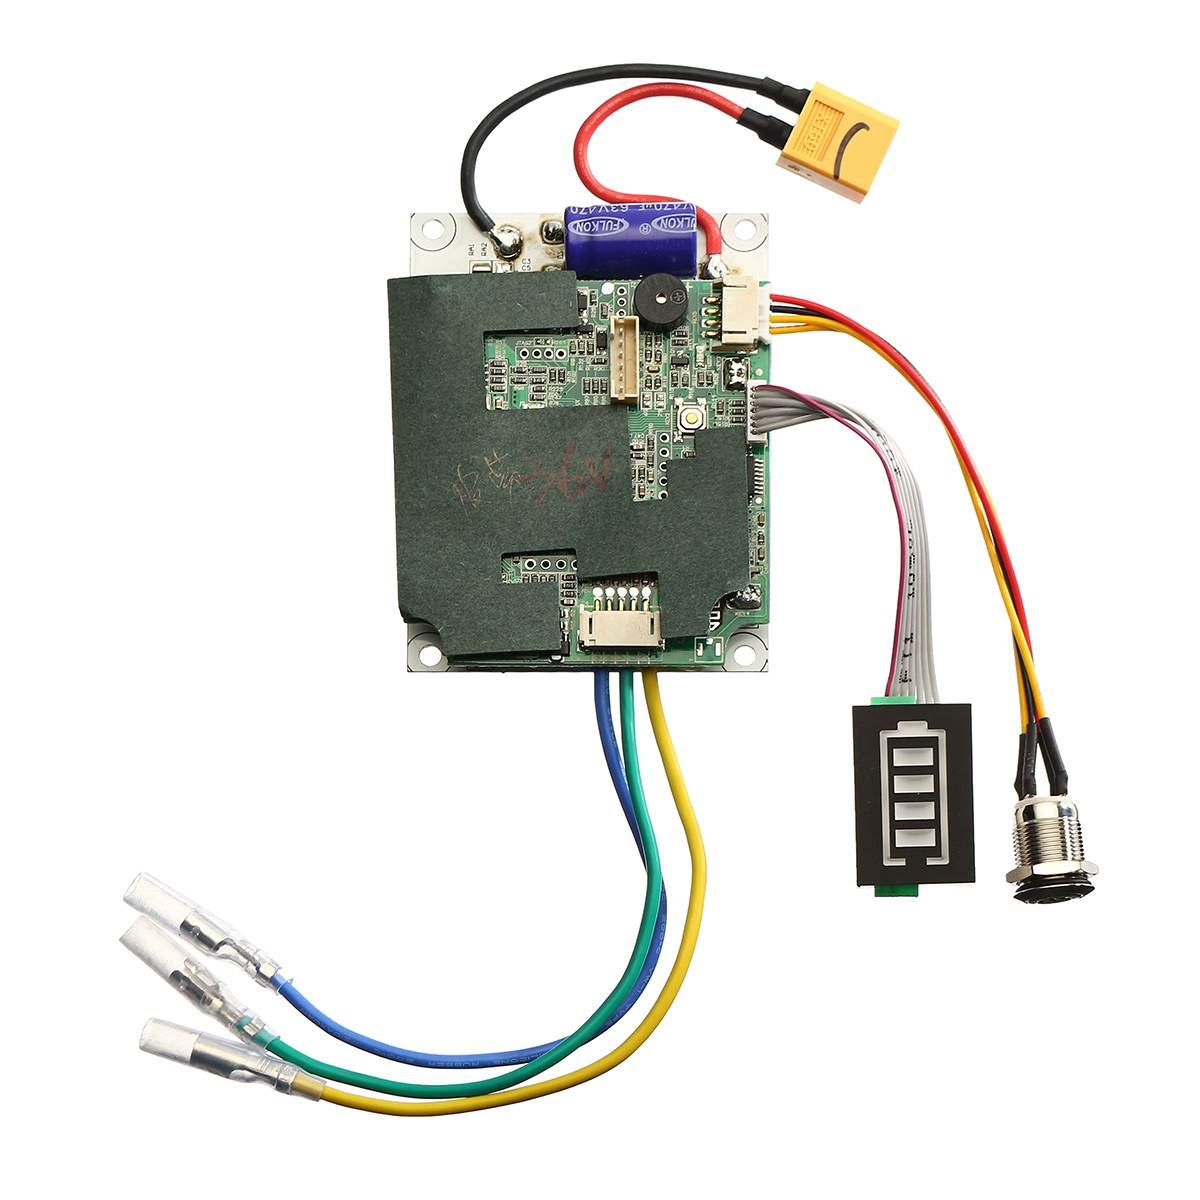 24/36V Single Belt Motor Electric Skateboard Controller Longboard ESC Substitute Parts Scooter Mainboard Instrument Tools 36